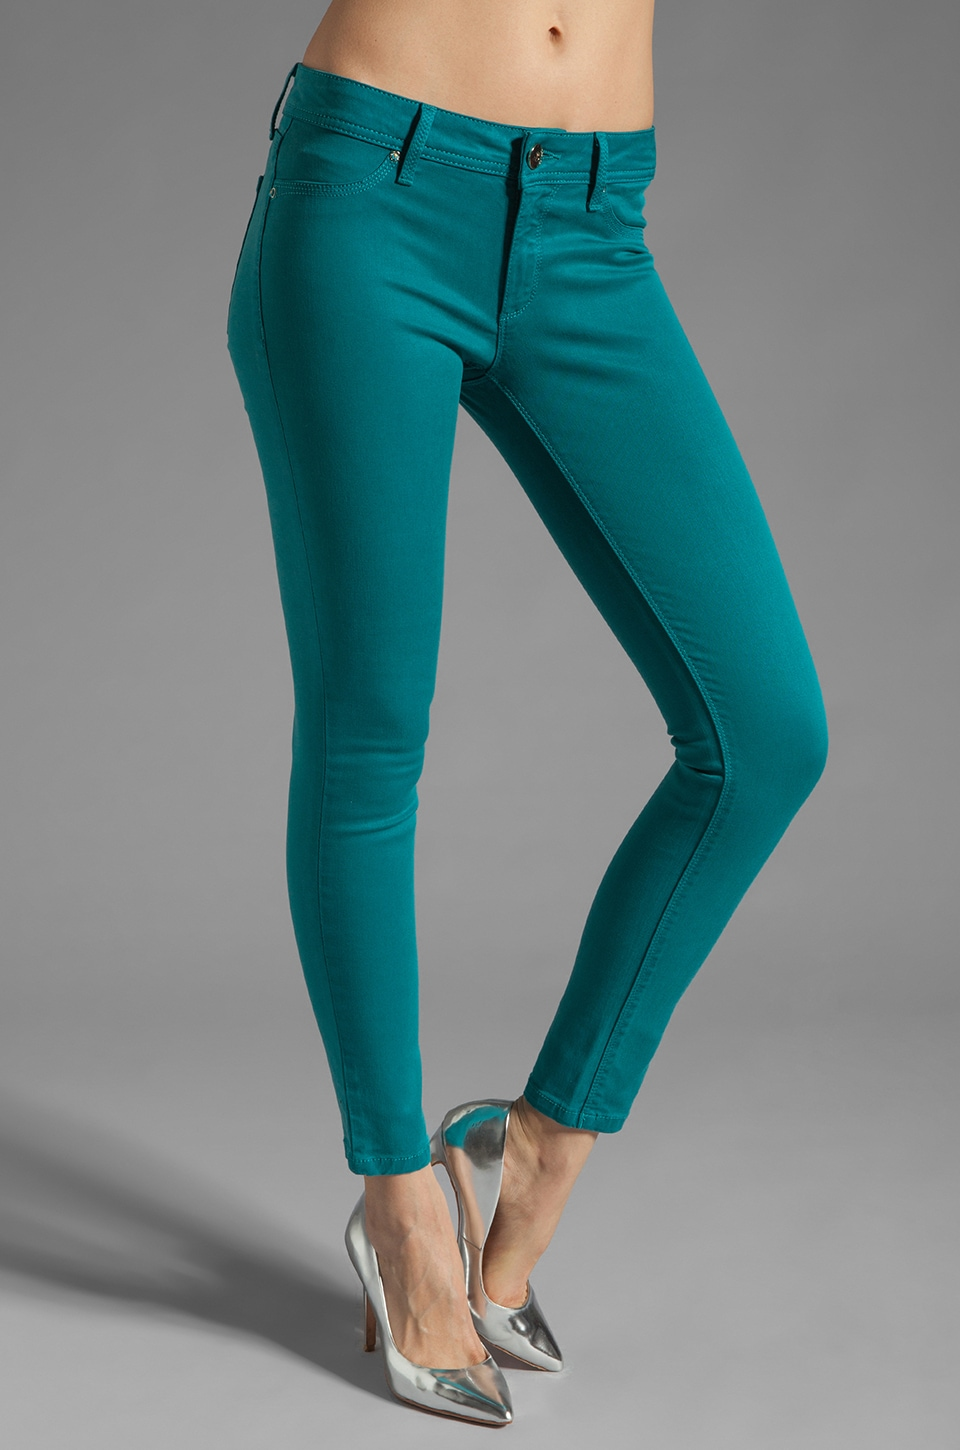 DL1961 Emma Legging in Aruba